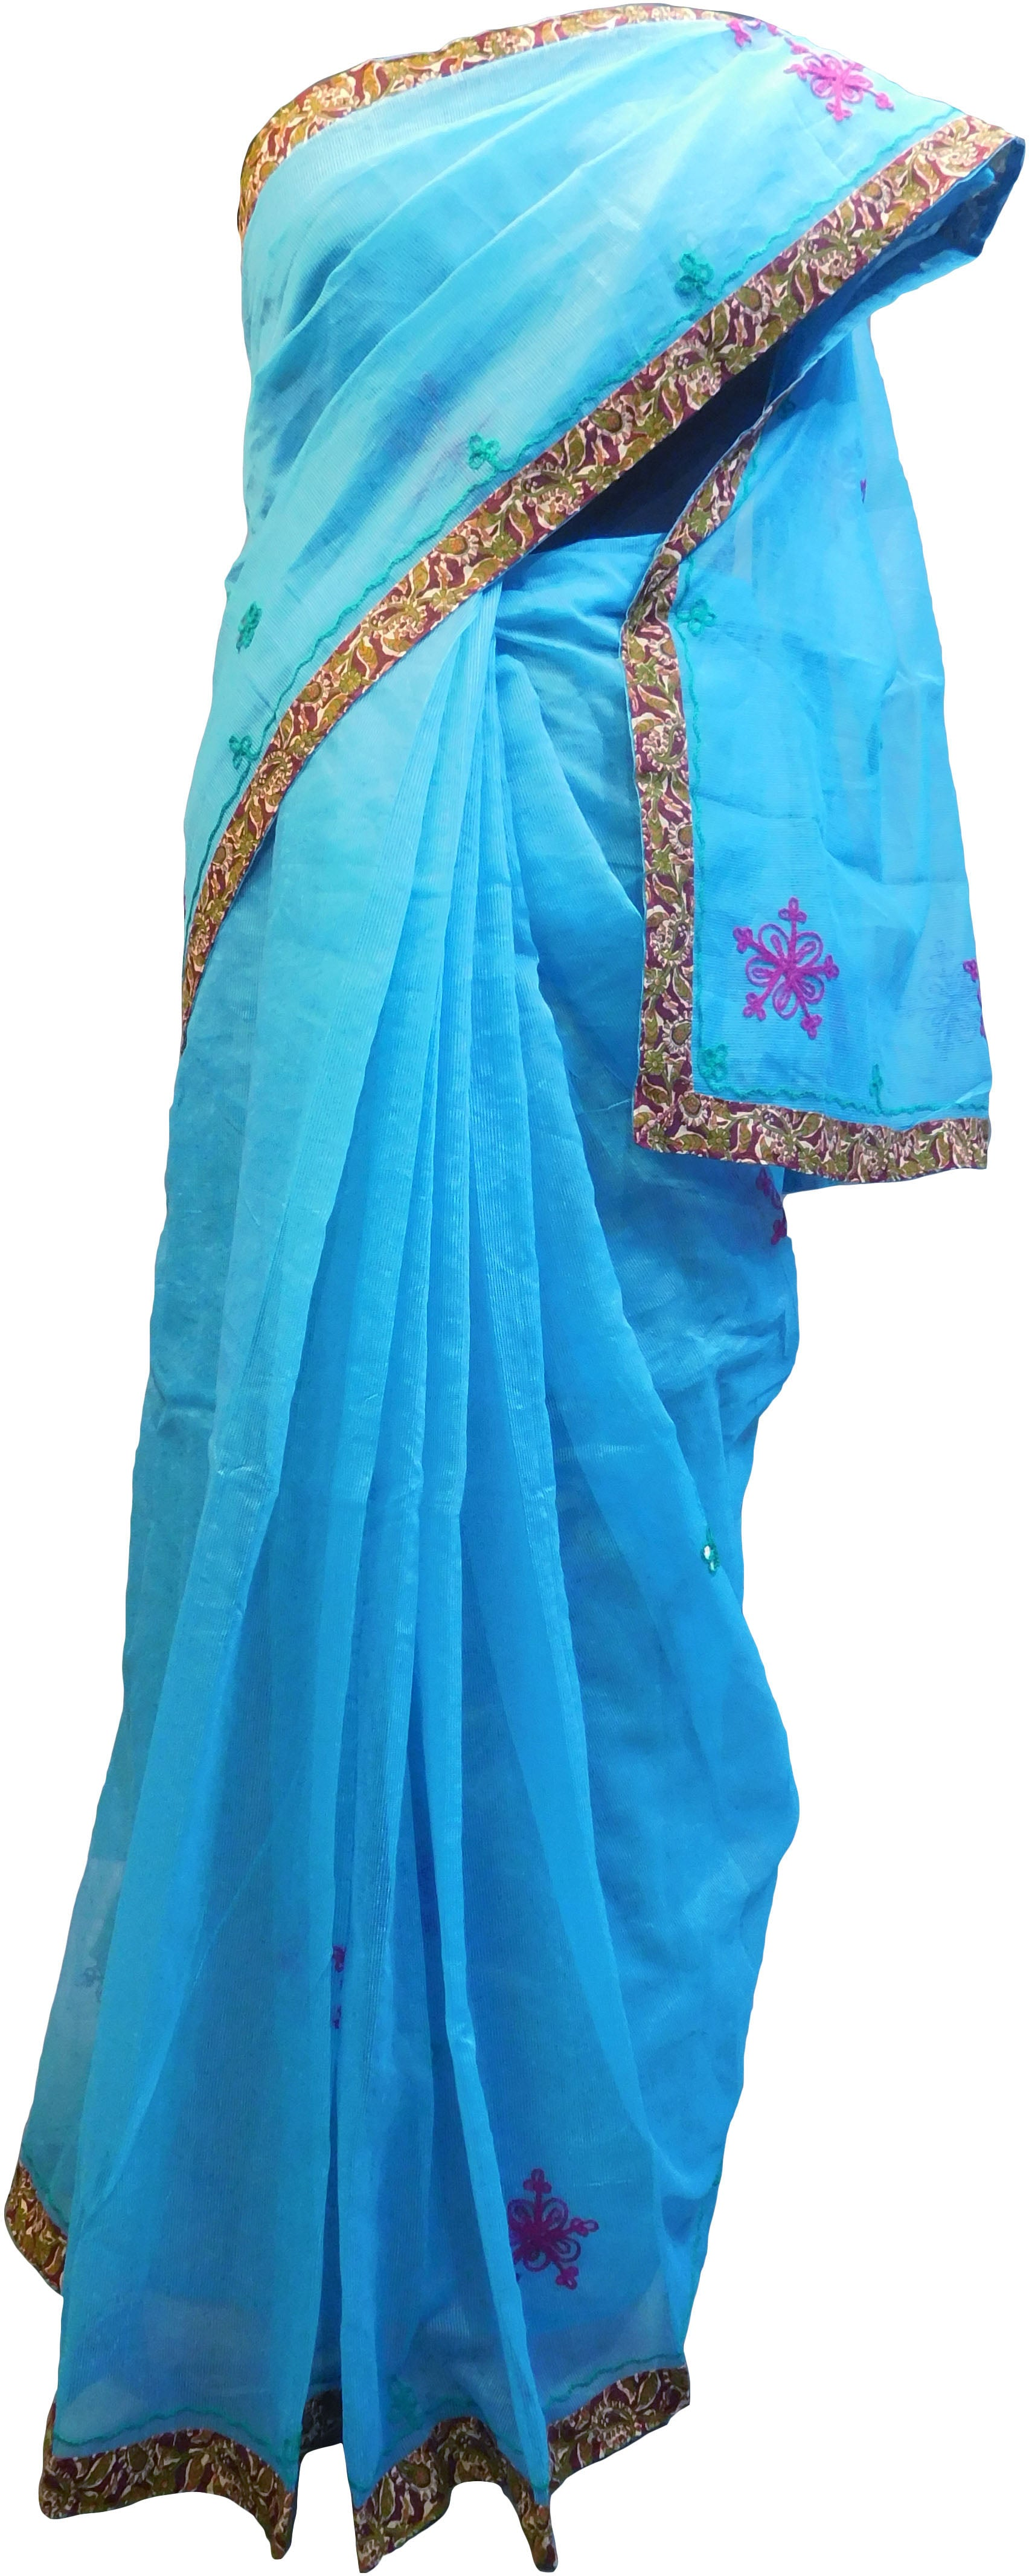 SMSAREE Blue Designer Wedding Partywear Supernet (Cotton) Thread Hand Embroidery Work Bridal Saree Sari With Blouse Piece F030